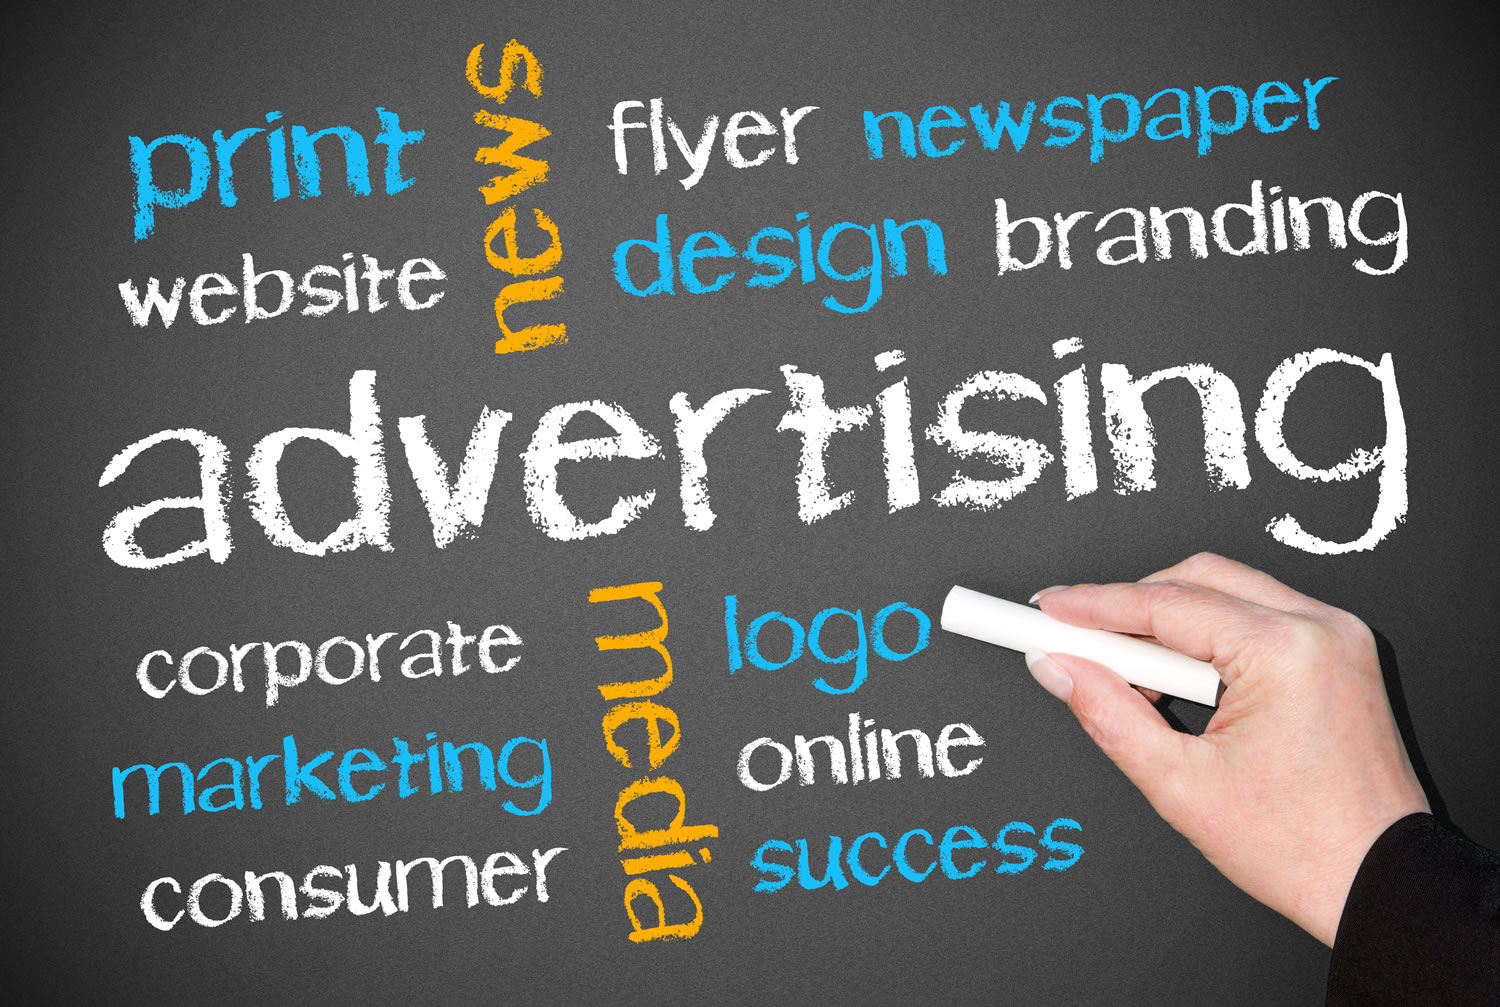 The Use of Advertising Agencies for Promoting Firms